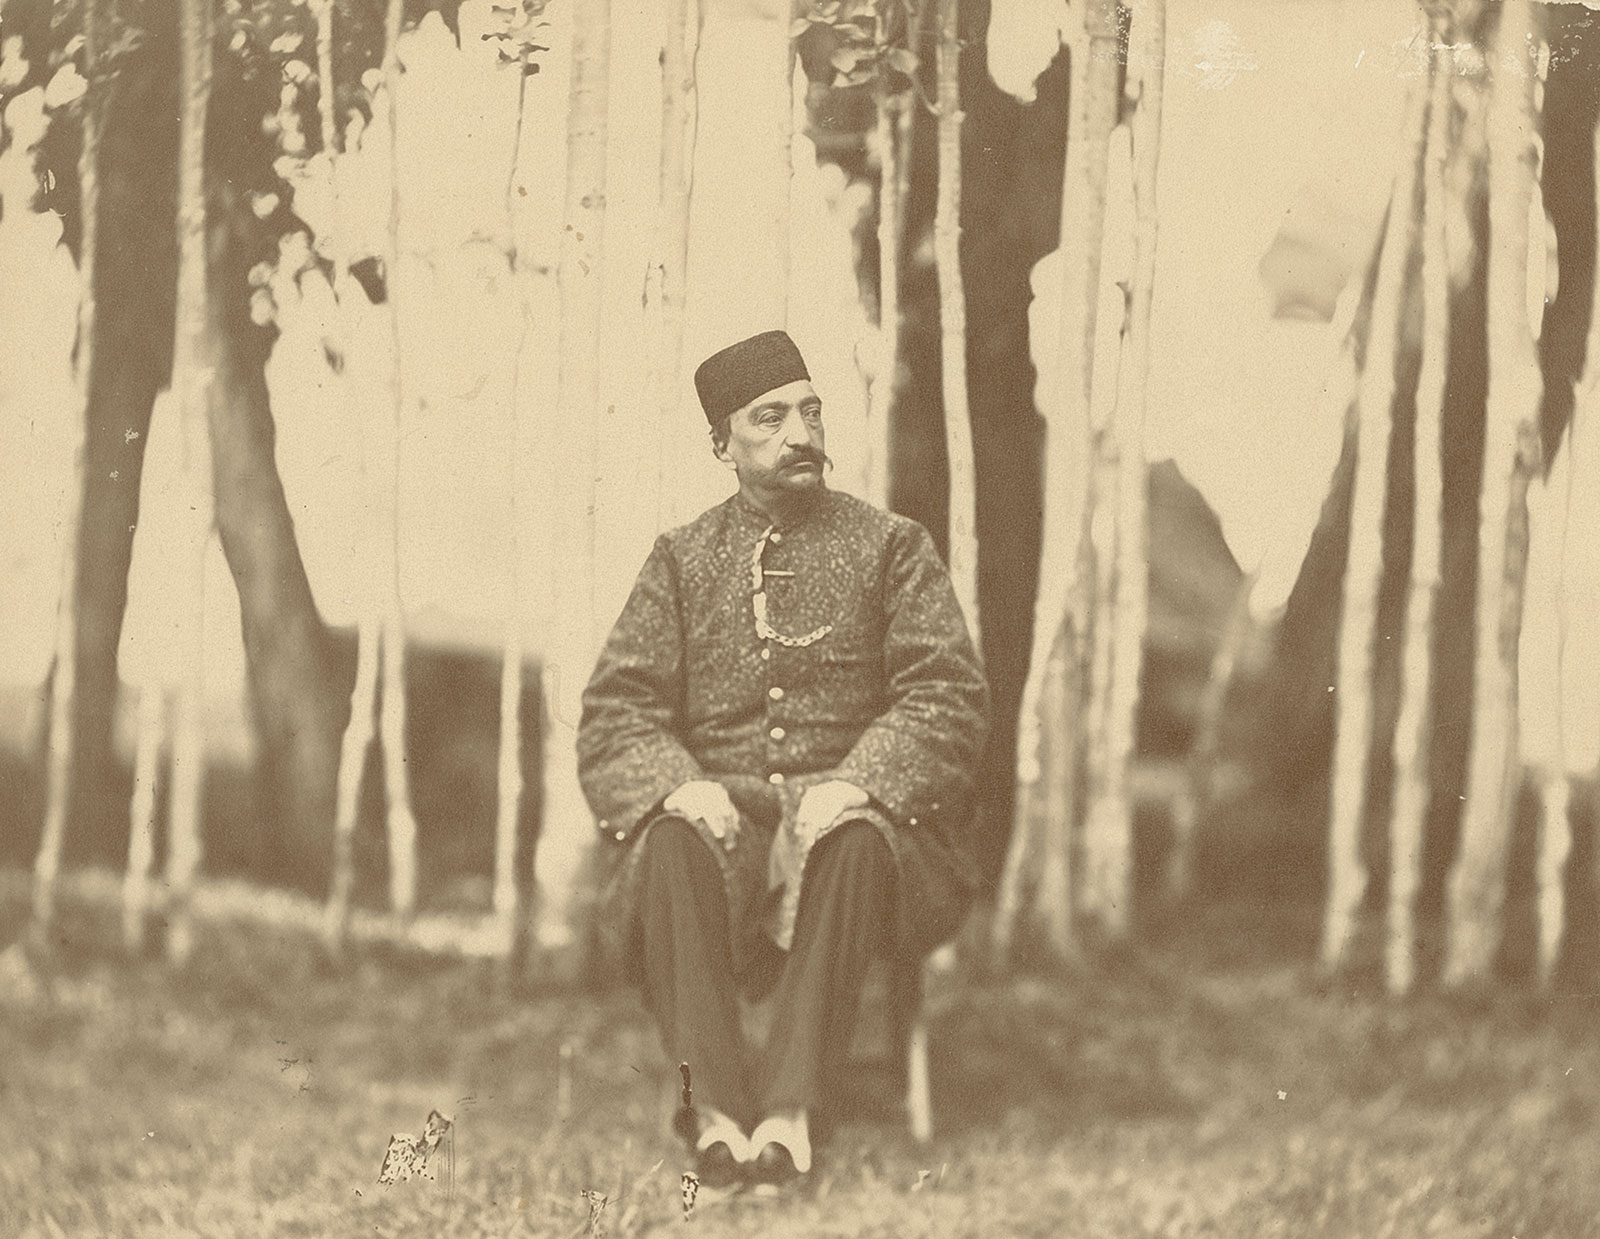 Seated Portrait of Naser al-Din Shah Qajar, taken by an unknown photographer, late nineteenth century